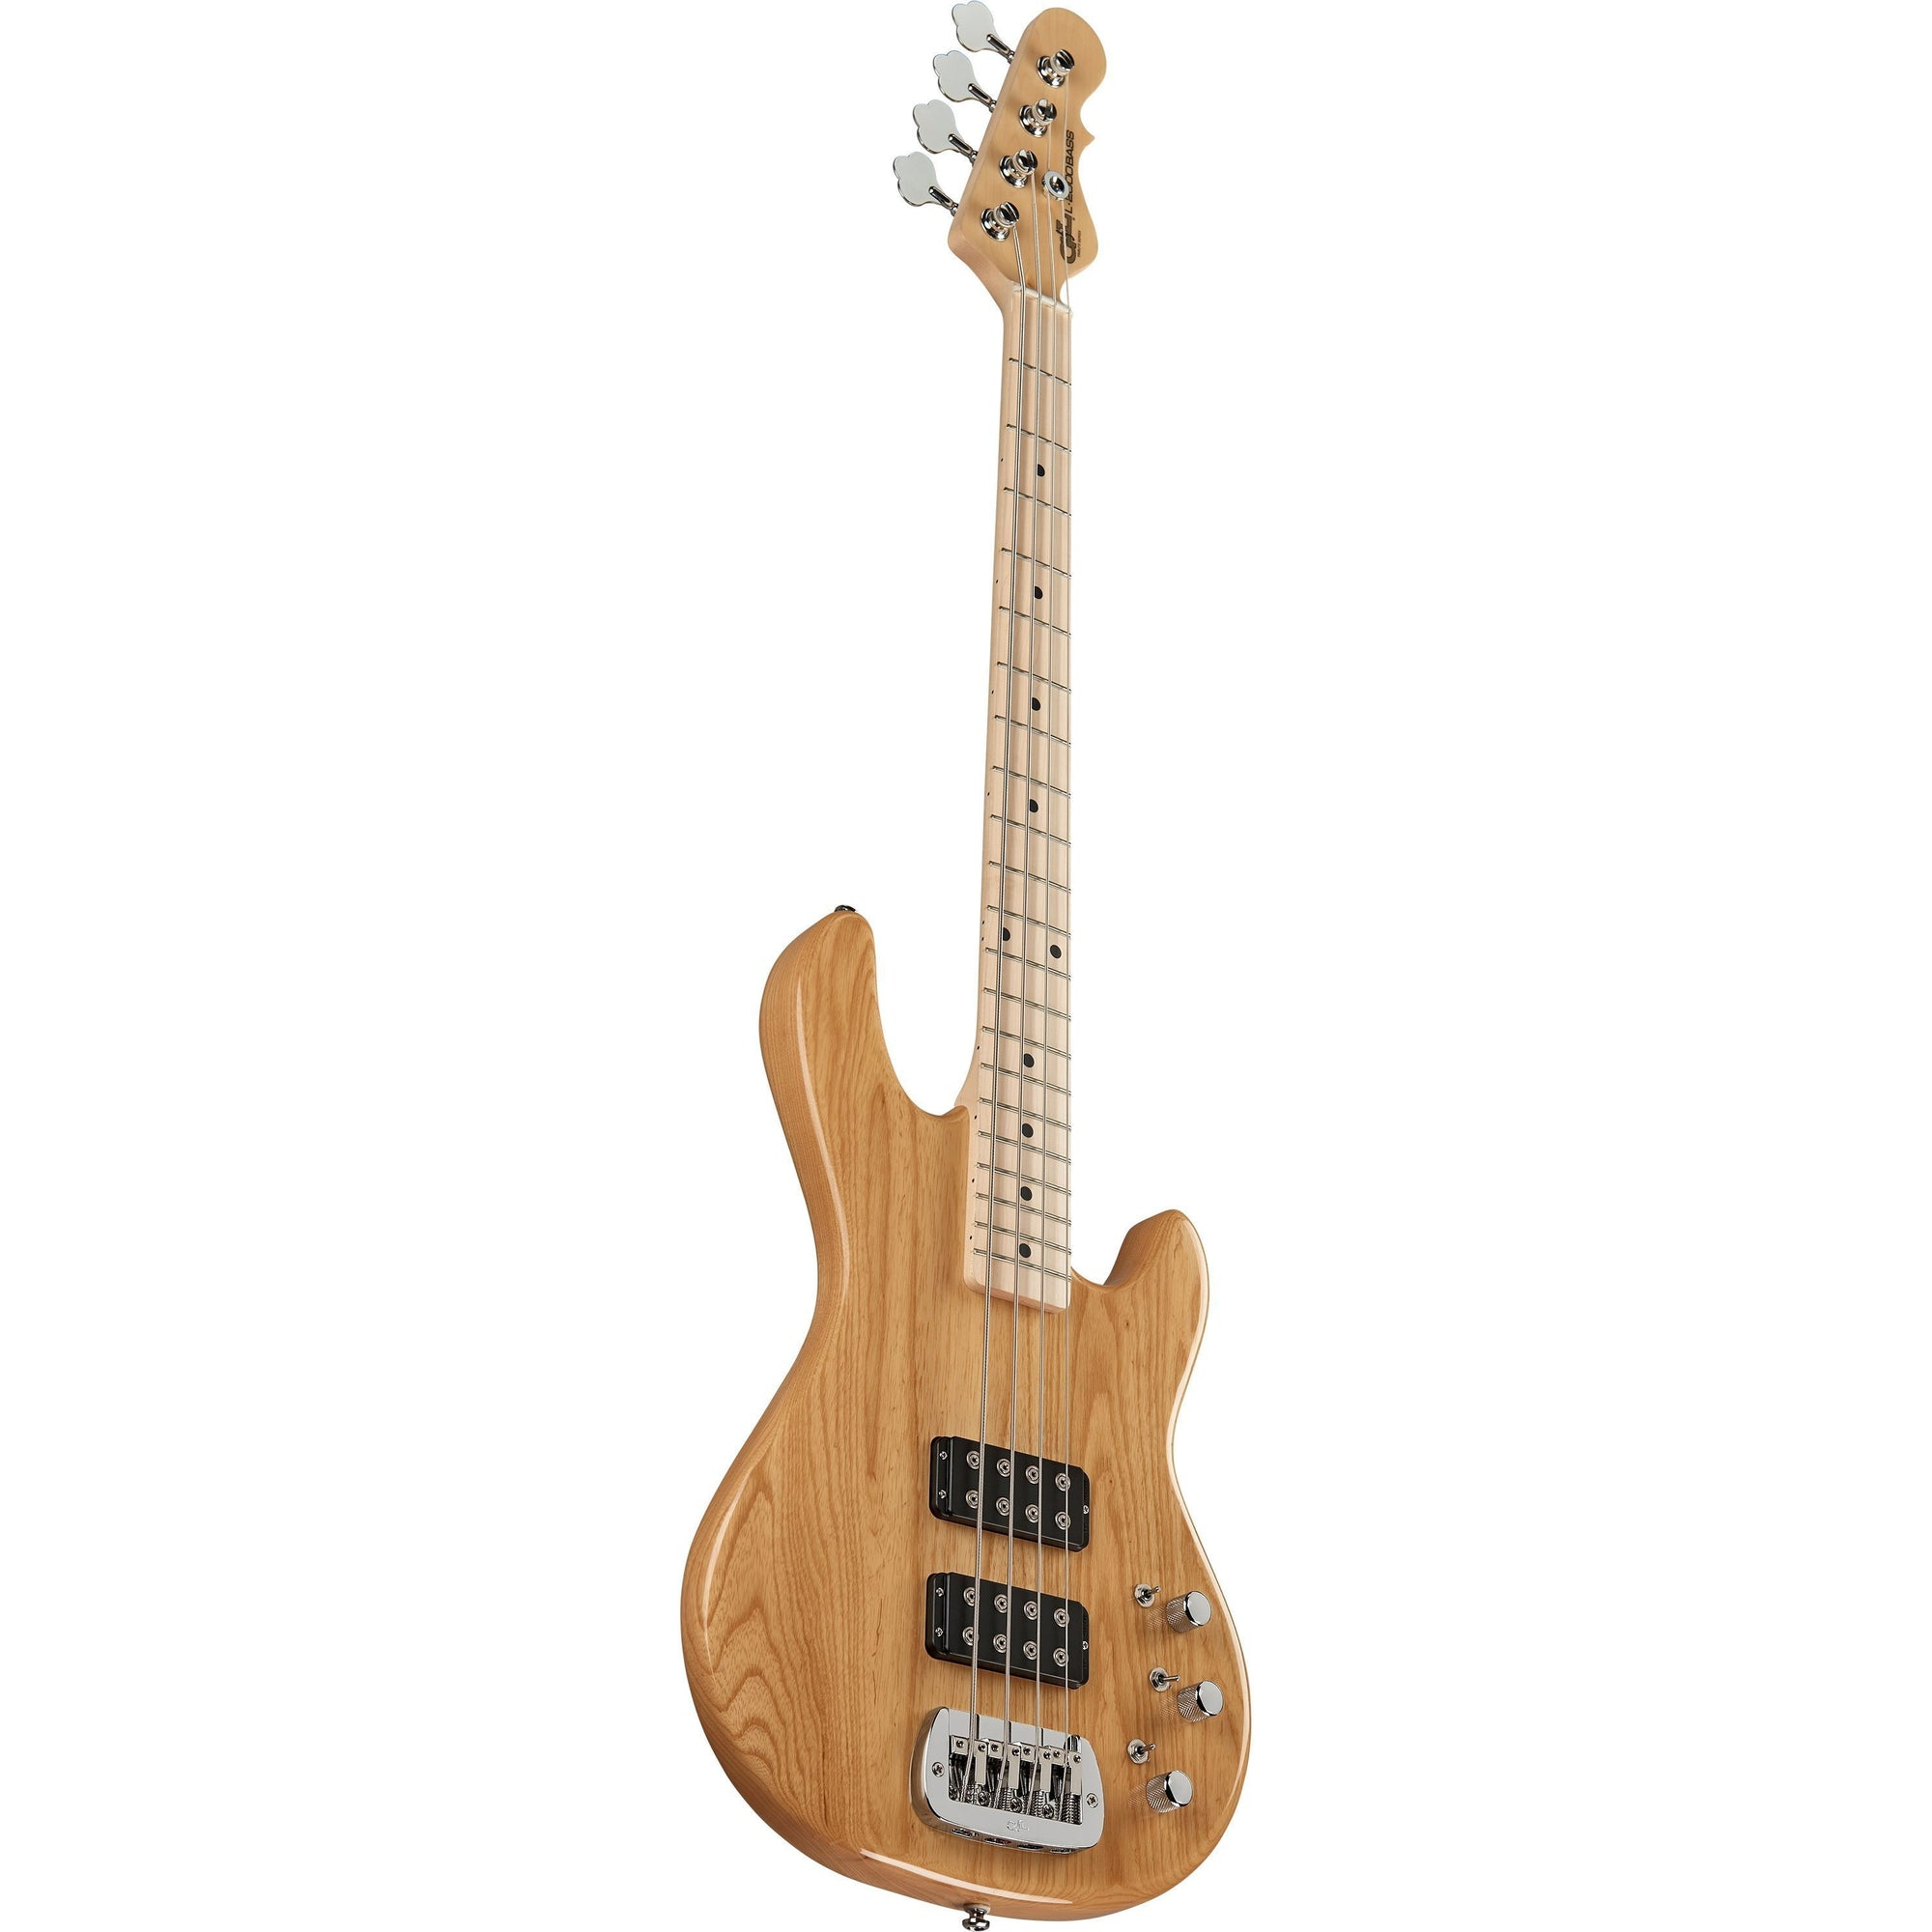 G&L Tribute L2000 Electric Bass, Maple Fingerboard, Natural Gloss